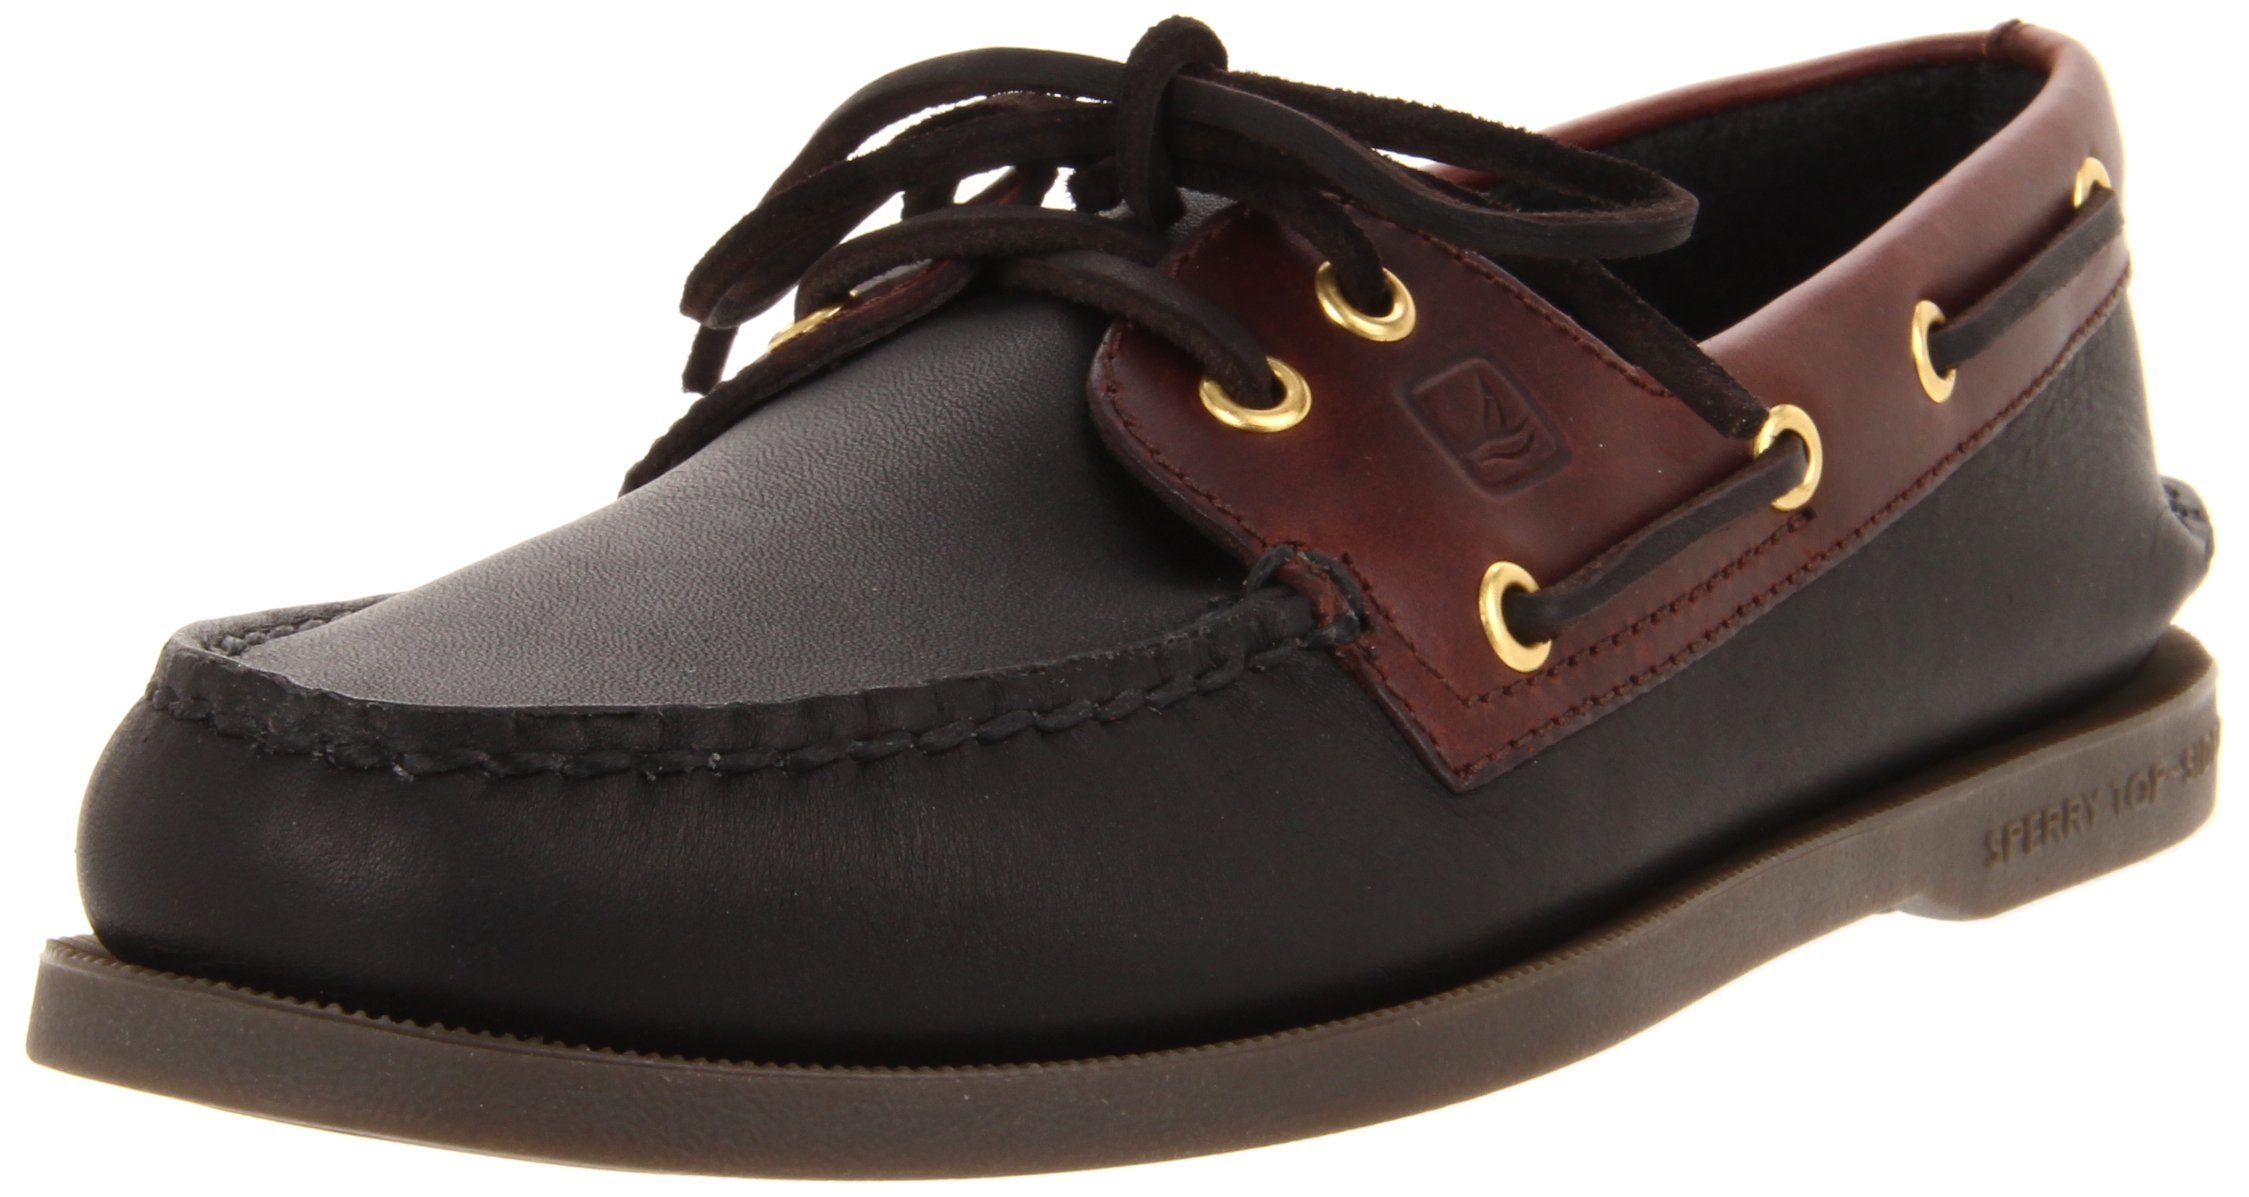 Sperry Top-Sider Men's Authentic Original 2 Eye Boat Shoe,Black/Amaretto,10.5 M